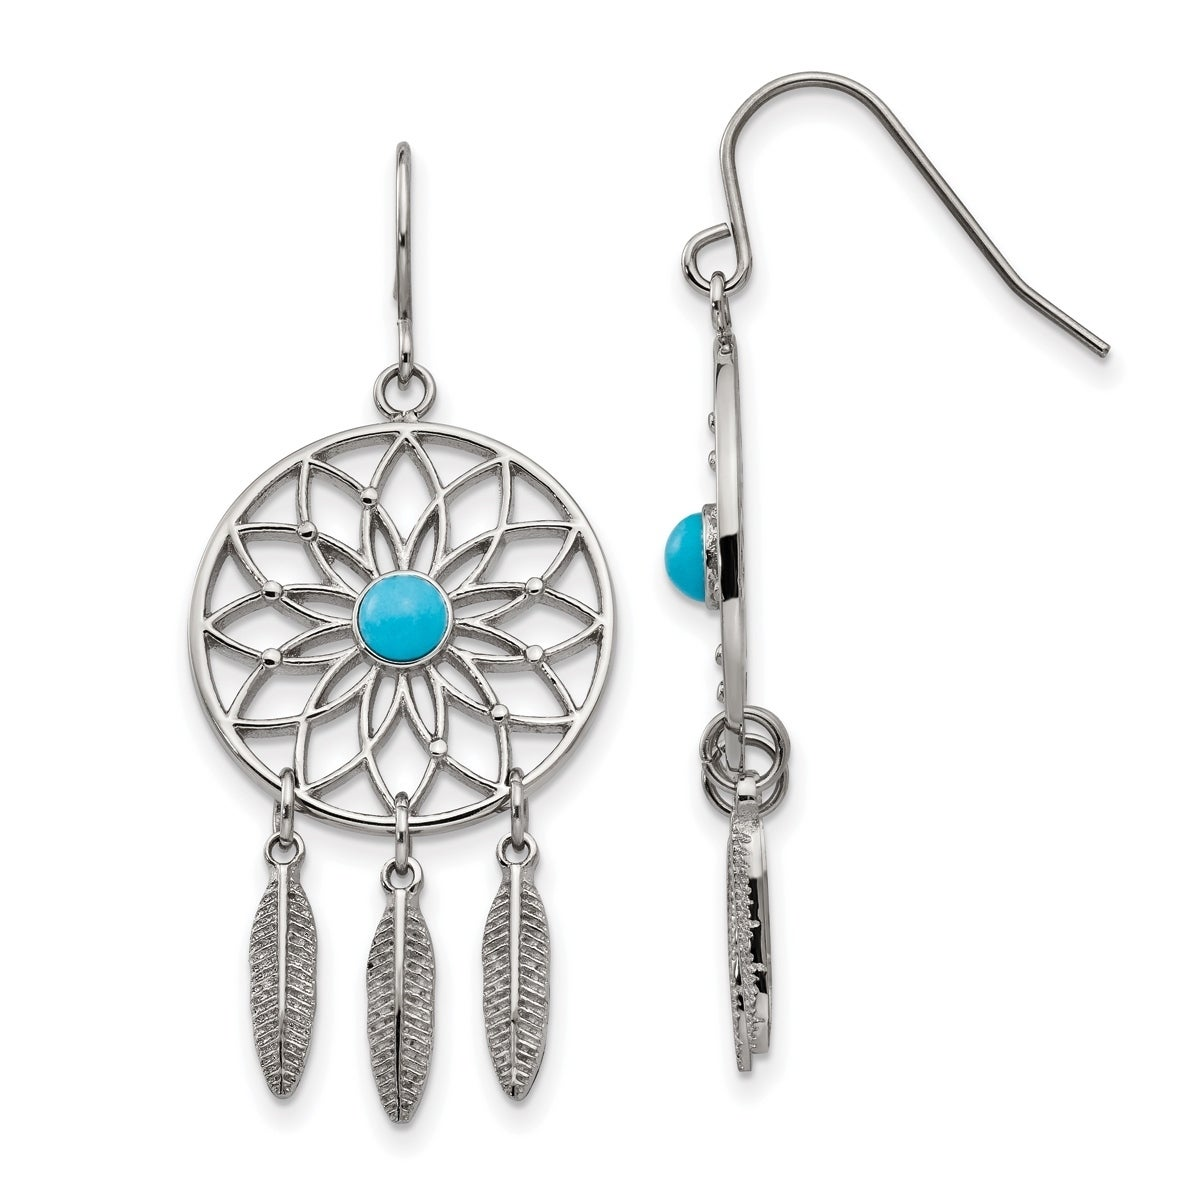 Versil Stainless Steel Polished With Imitation Turquoise Dreamcatcher Earrings Free Shipping Today 20730002